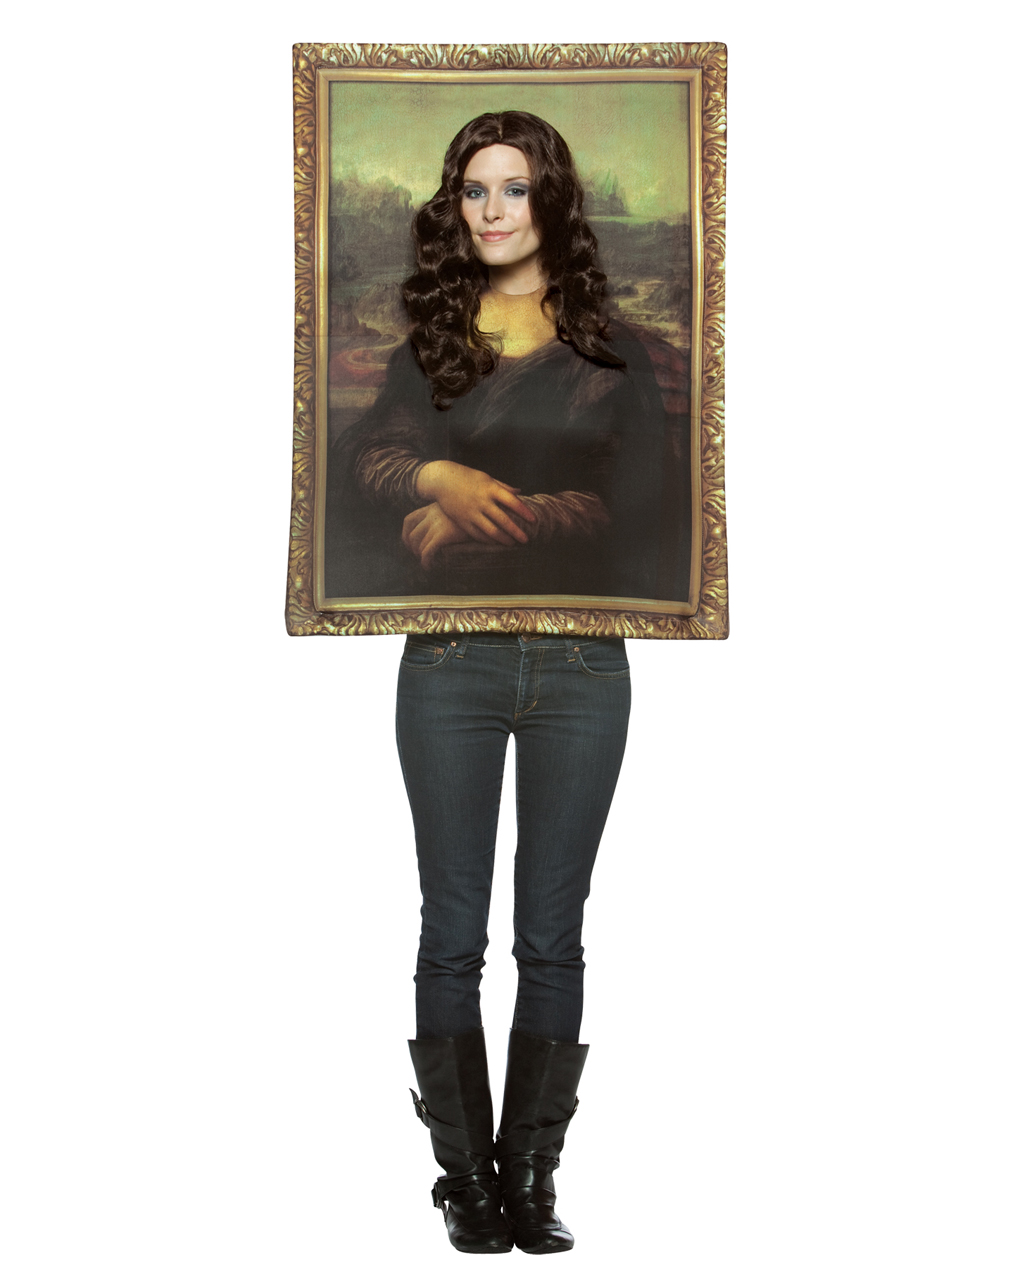 mona lisa faschingskost m online bestellen karneval universe. Black Bedroom Furniture Sets. Home Design Ideas